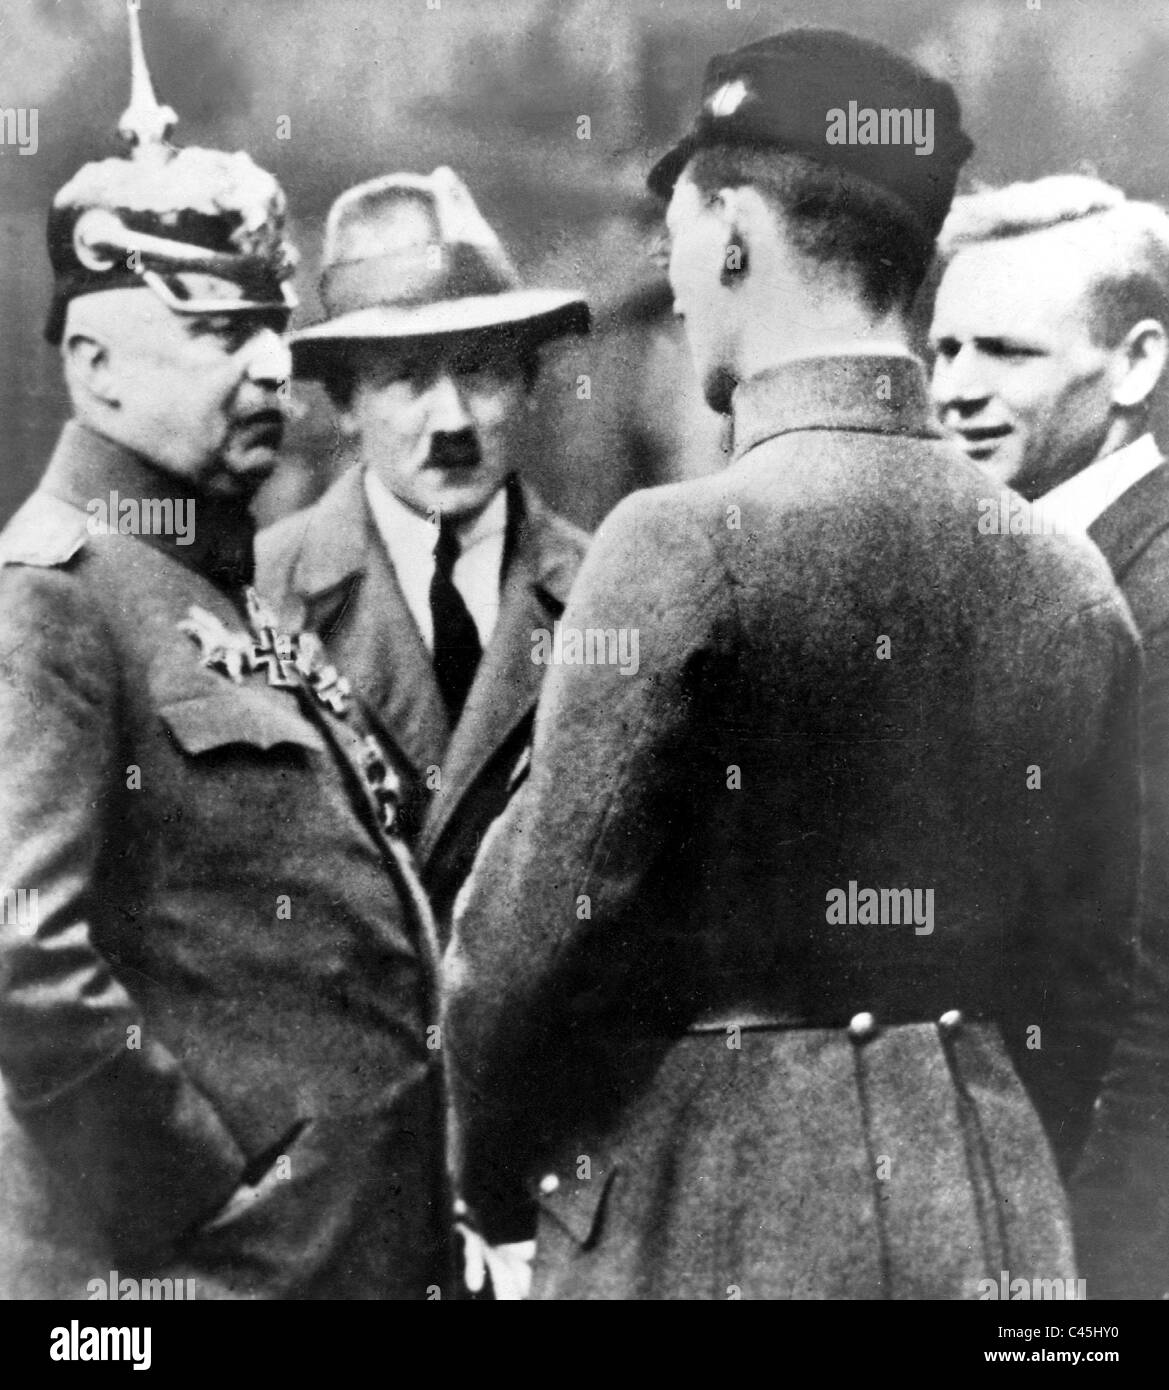 adolf hitler a transformational leader Adolf hitler was the head and leader of nazi germany who started the world war ii he was most known for his for his central leadership role in the rise of fascism in europe, world war ii and the holocaust disclaimer: we all know hitler was a.